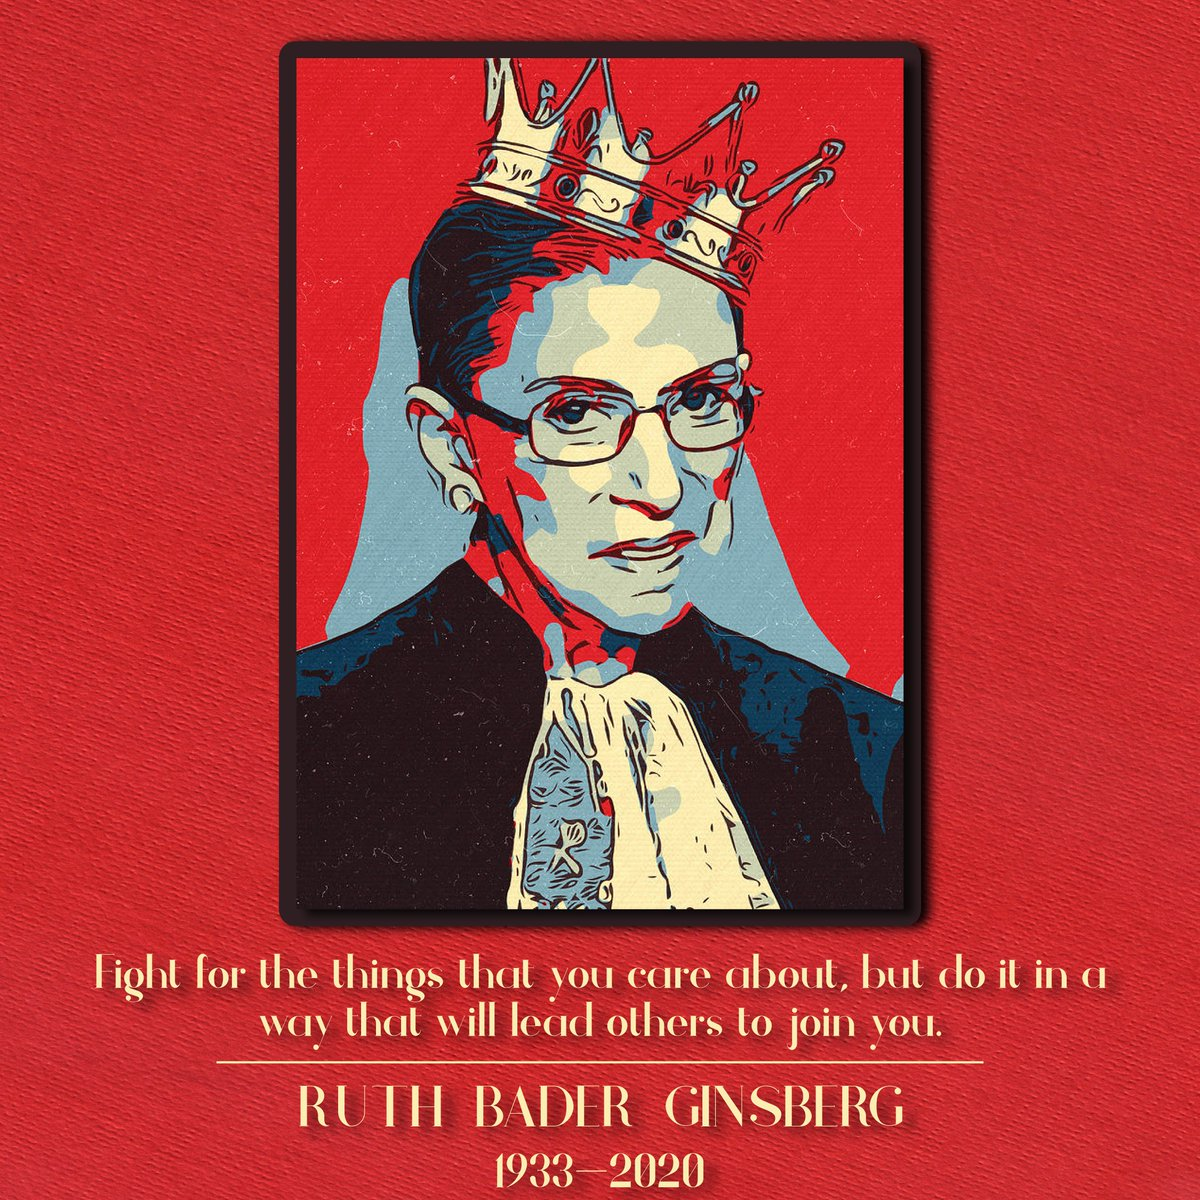 U.S. supreme court #justice Ruth Bader Ginsburg died on18th September,2020.She raised her voice against #discrimination and demanded #equality.She'll always be remembered! #RuthBaderGinsberg #RIPRBG #NotoriousRBG #RIPRuthBaderGinsburg #RestInPowerRBG #RBG #Womenite #changemakers https://t.co/7bvRRMajkg